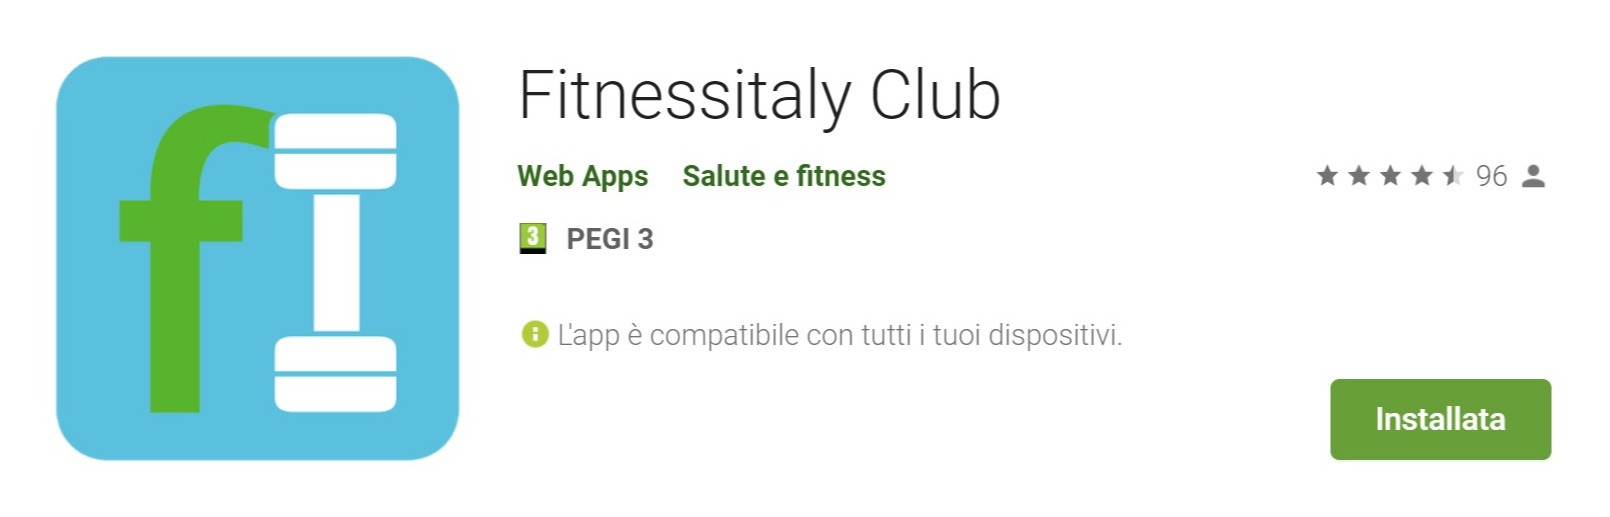 Screenshot of Fitnessitaly Club - App su Google Play